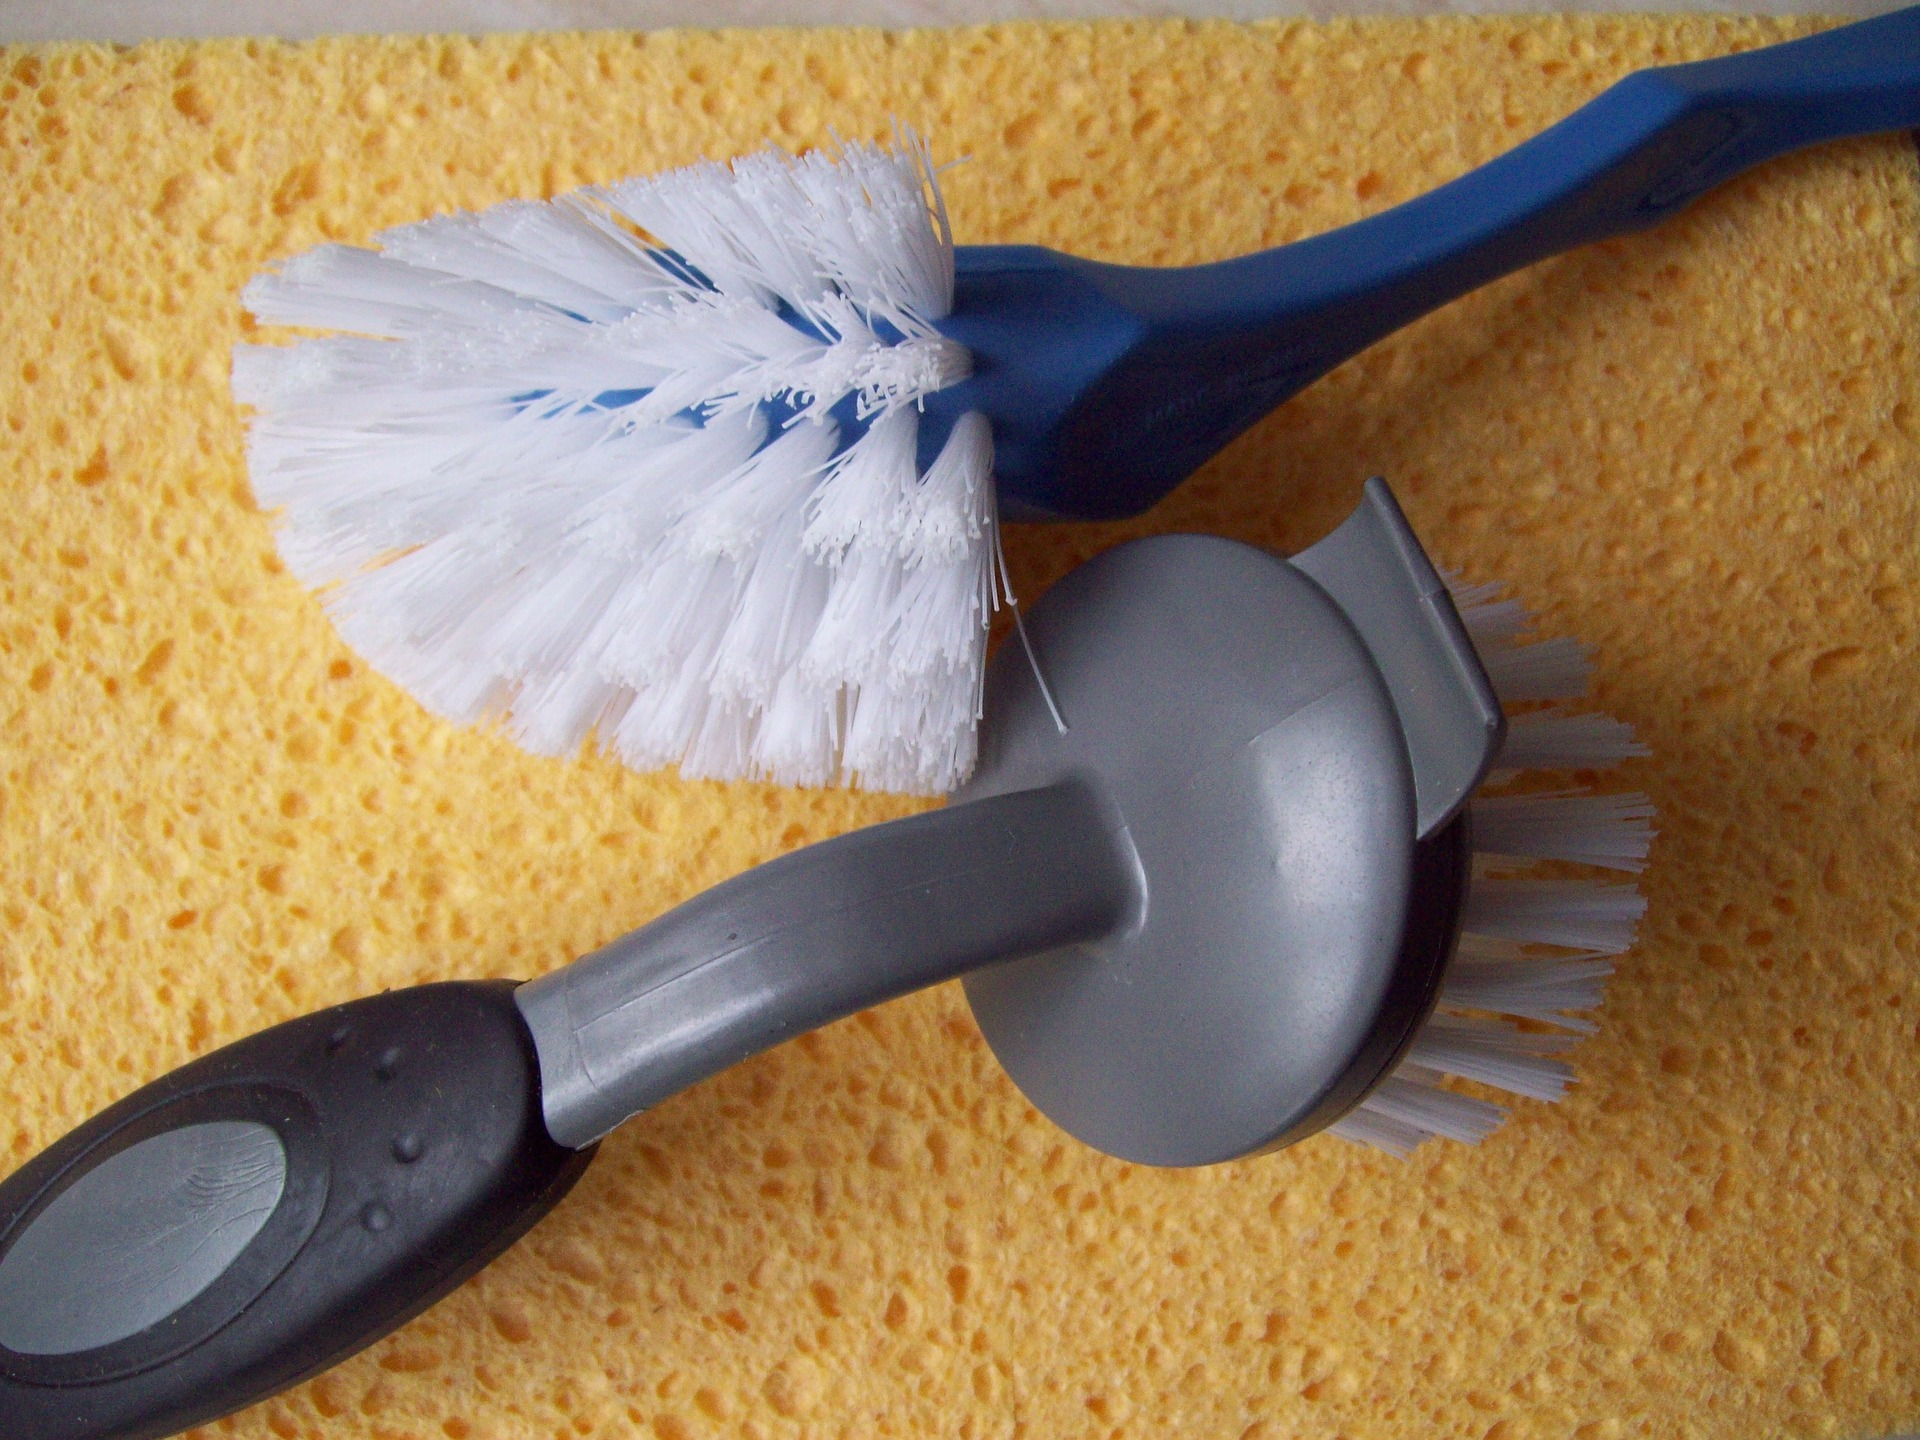 Disinfect all cleaning tools and throw away sponges that have been overused.